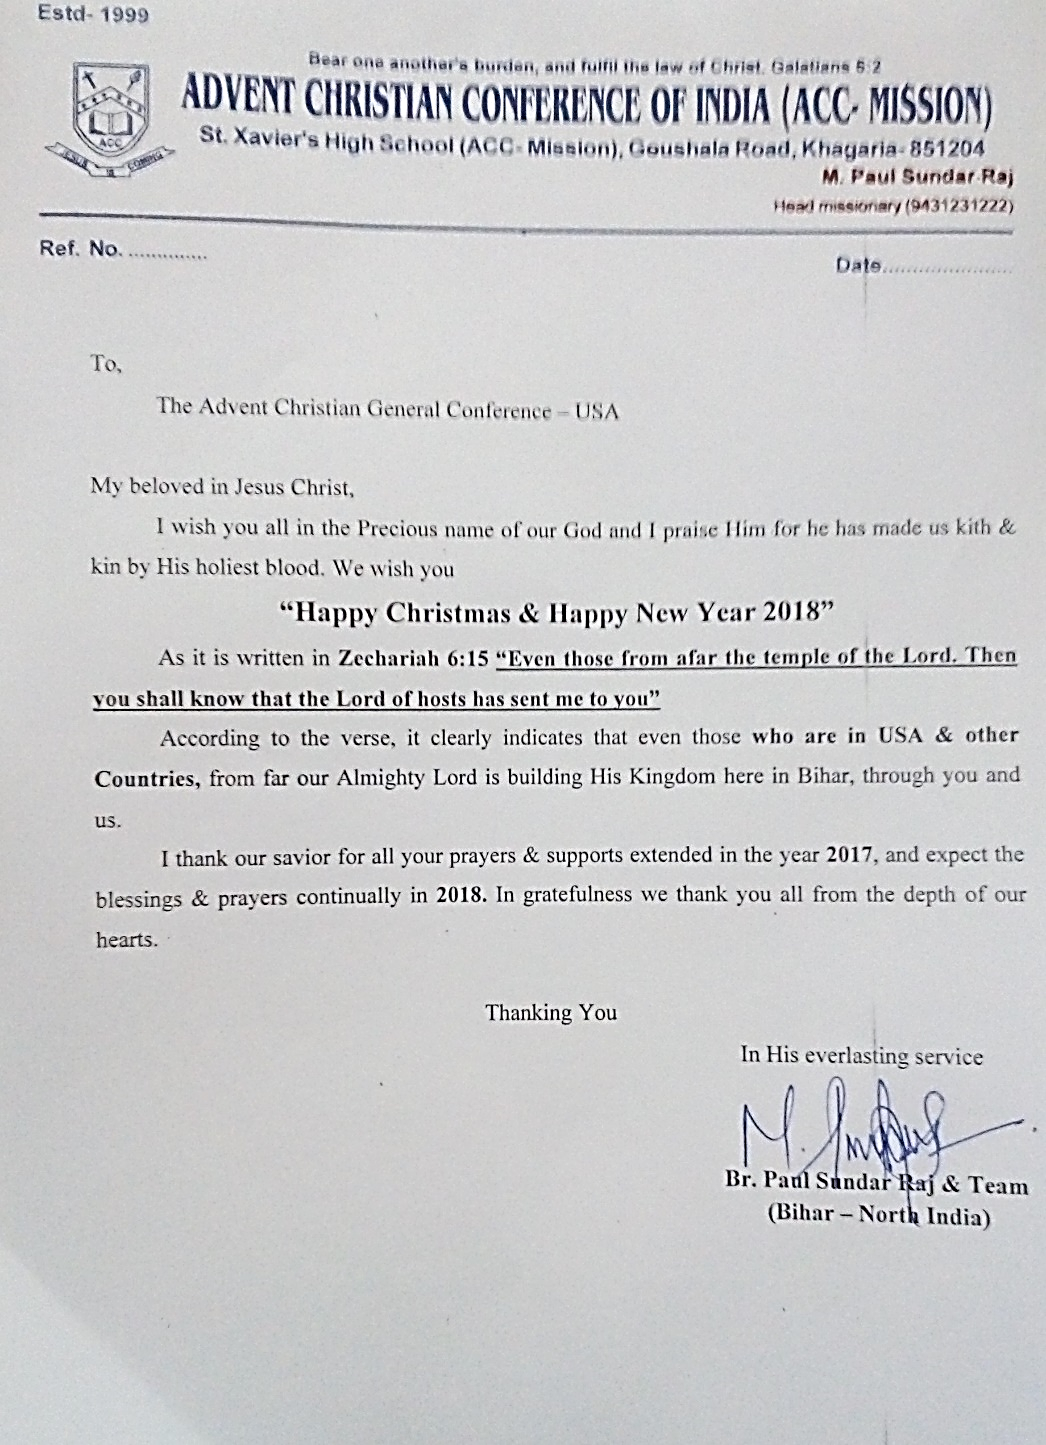 India letter of appreciation from pastor paul sundar raj acmissionz he has also sent pictures of the key members of his team both at st xaviers high school and of the outreach ministries and asks for regular thecheapjerseys Gallery